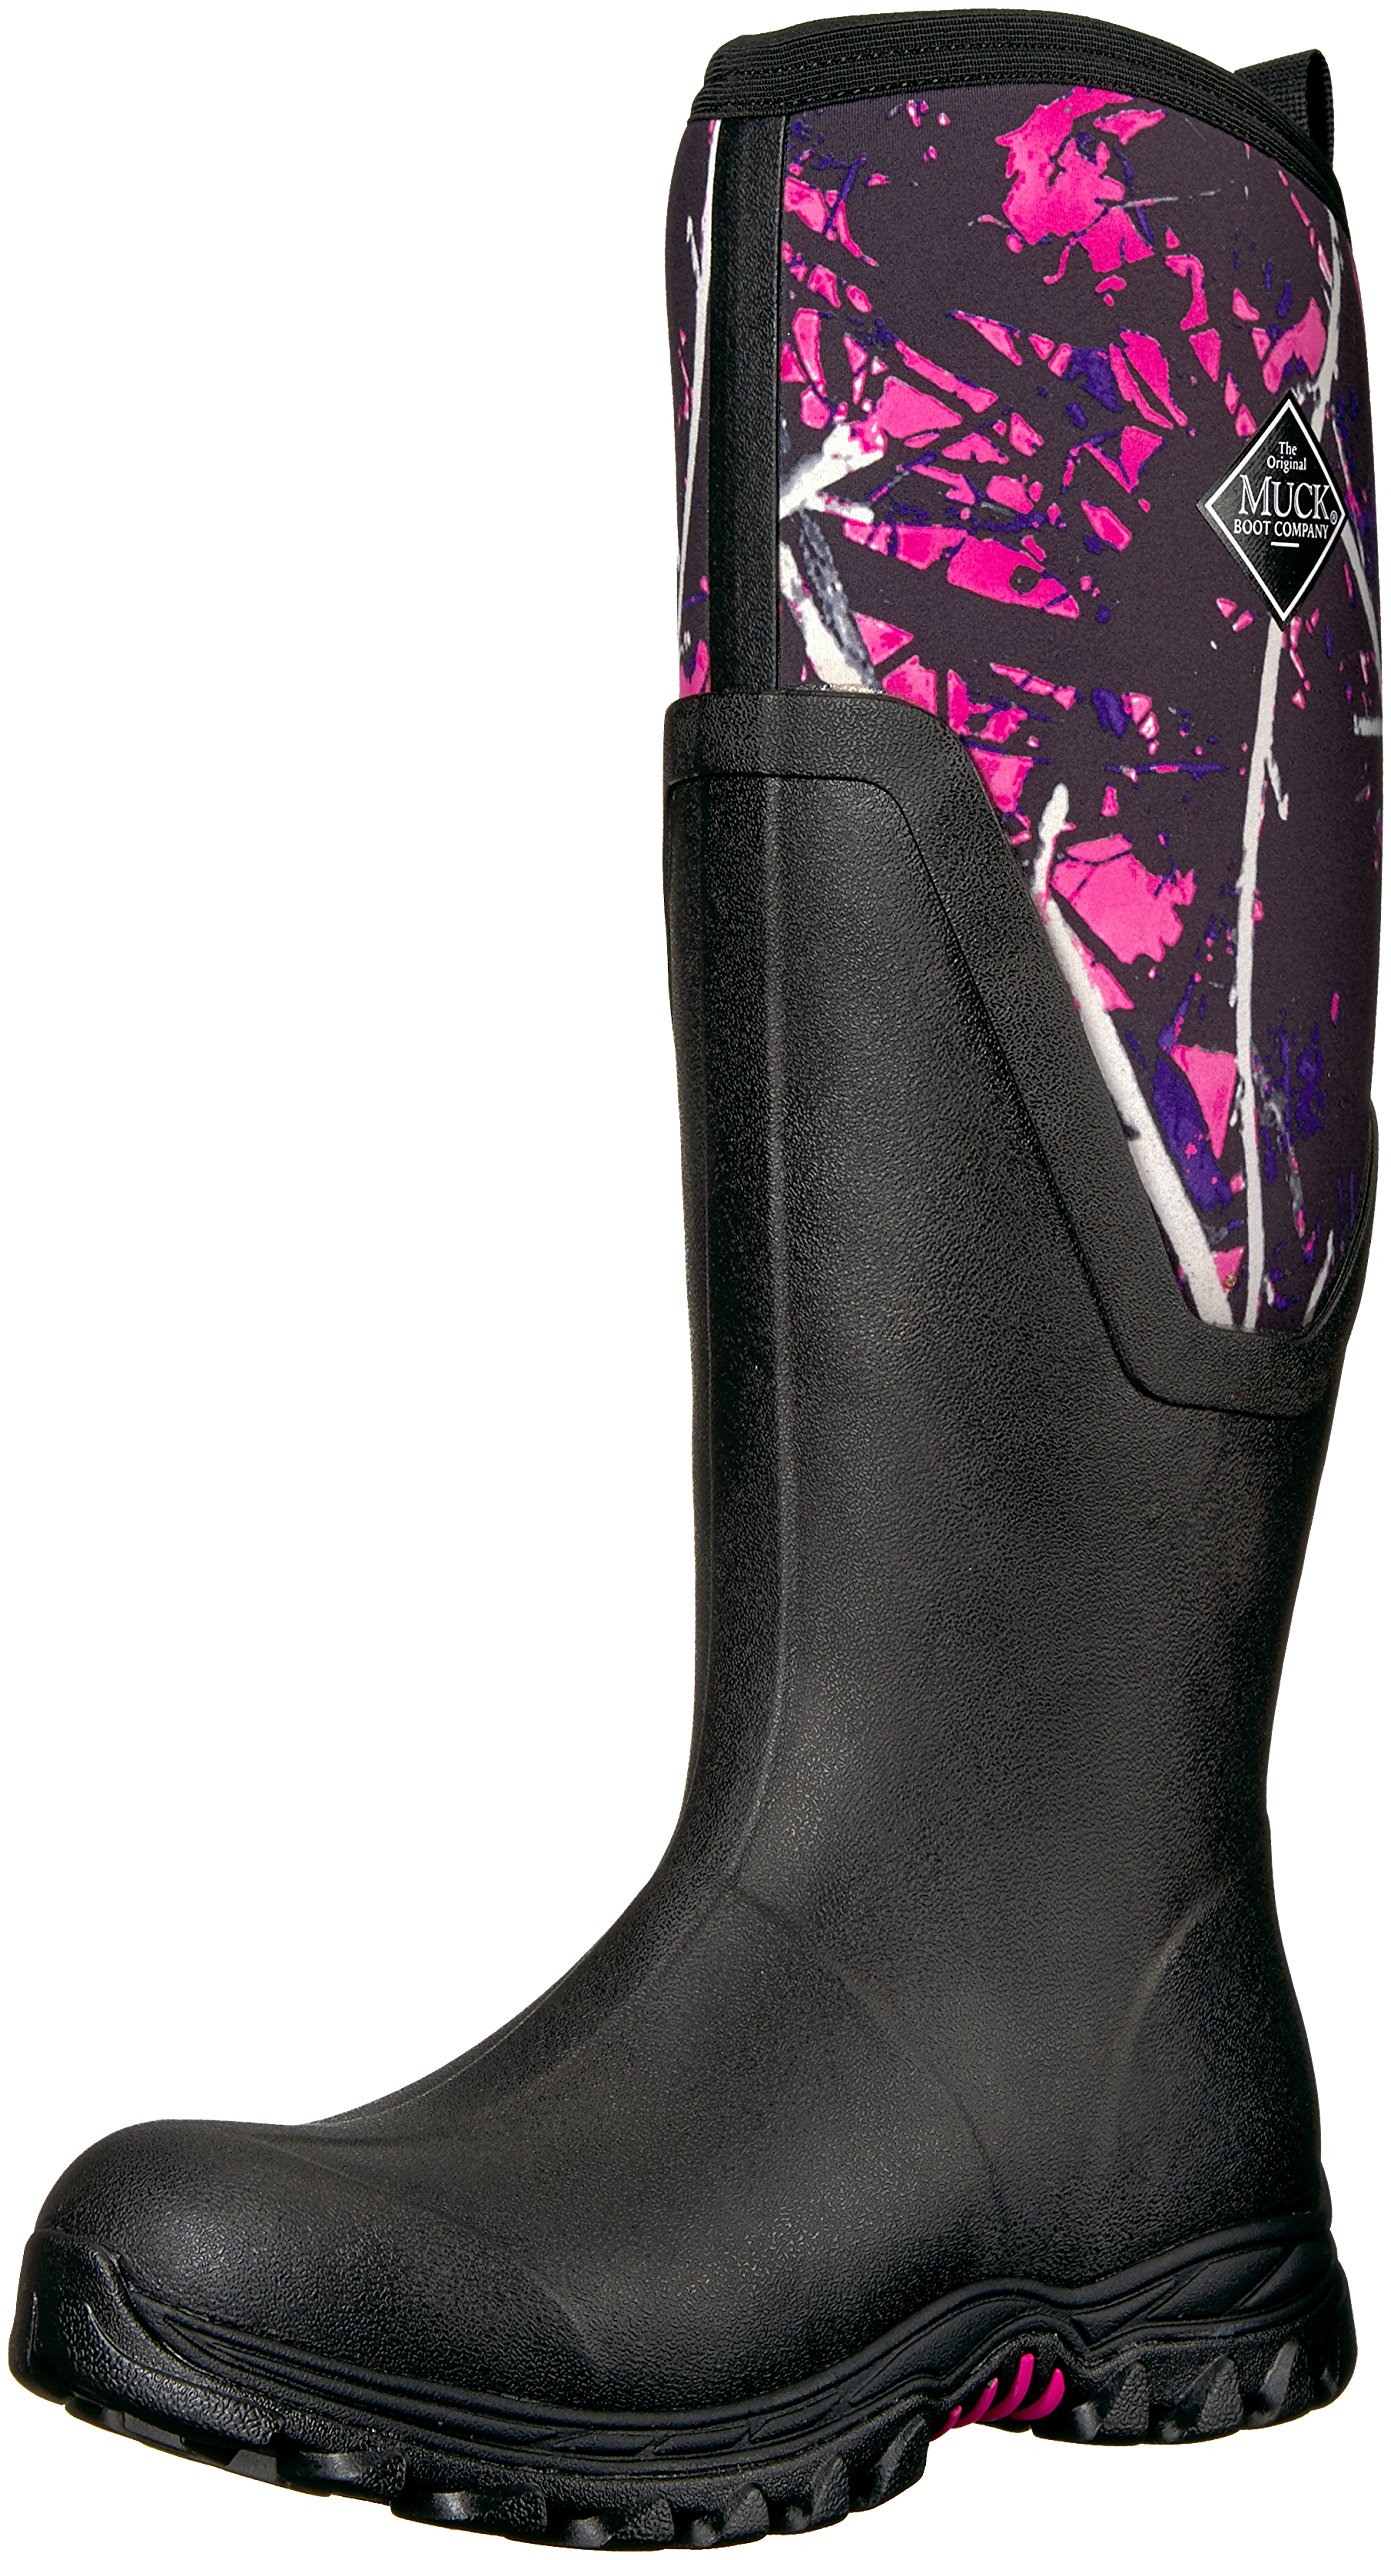 Muck Boot Women's Arctic Sport II Tall Work Boot, Black/Muddy Girl, 9 M US by Muck Boot